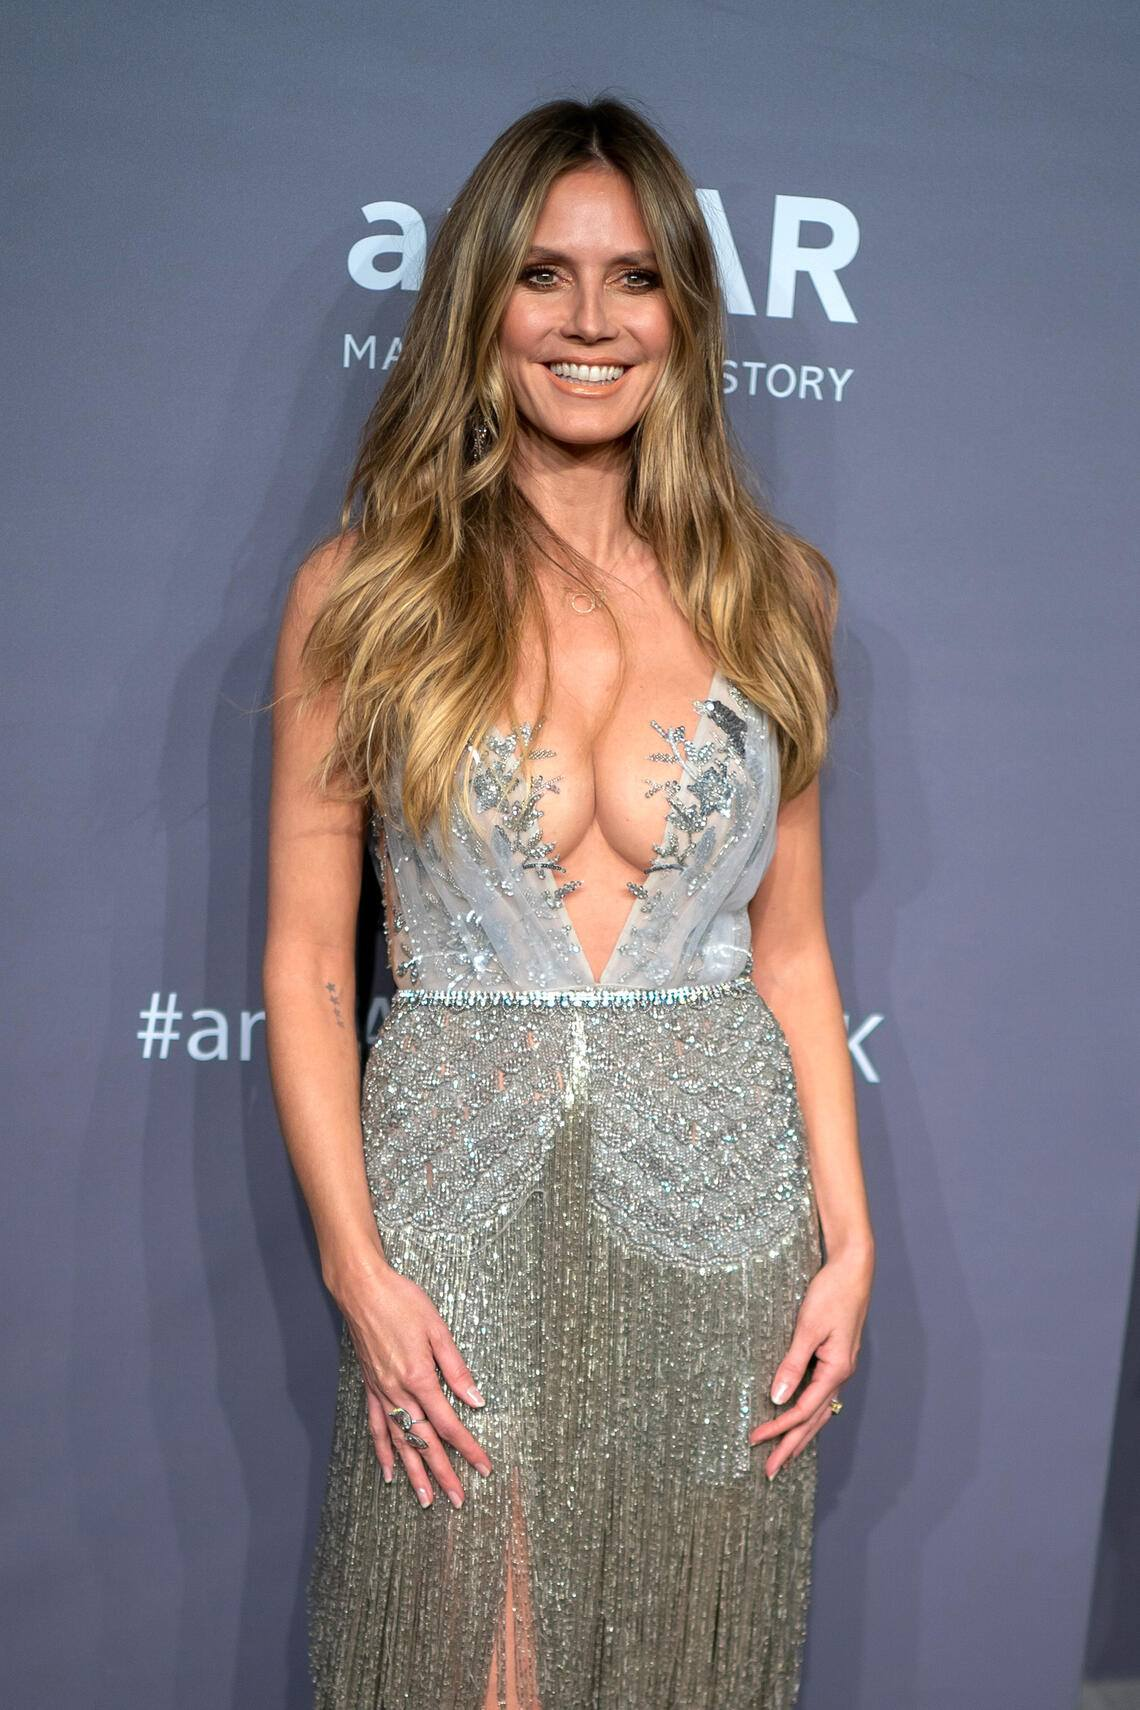 NEW YORK, NEW YORK - FEBRUARY 06: Heidi Klum attends the 2019 amfAR New York Gala at Cipriani Wall Street on February 06, 2019 in New York City.